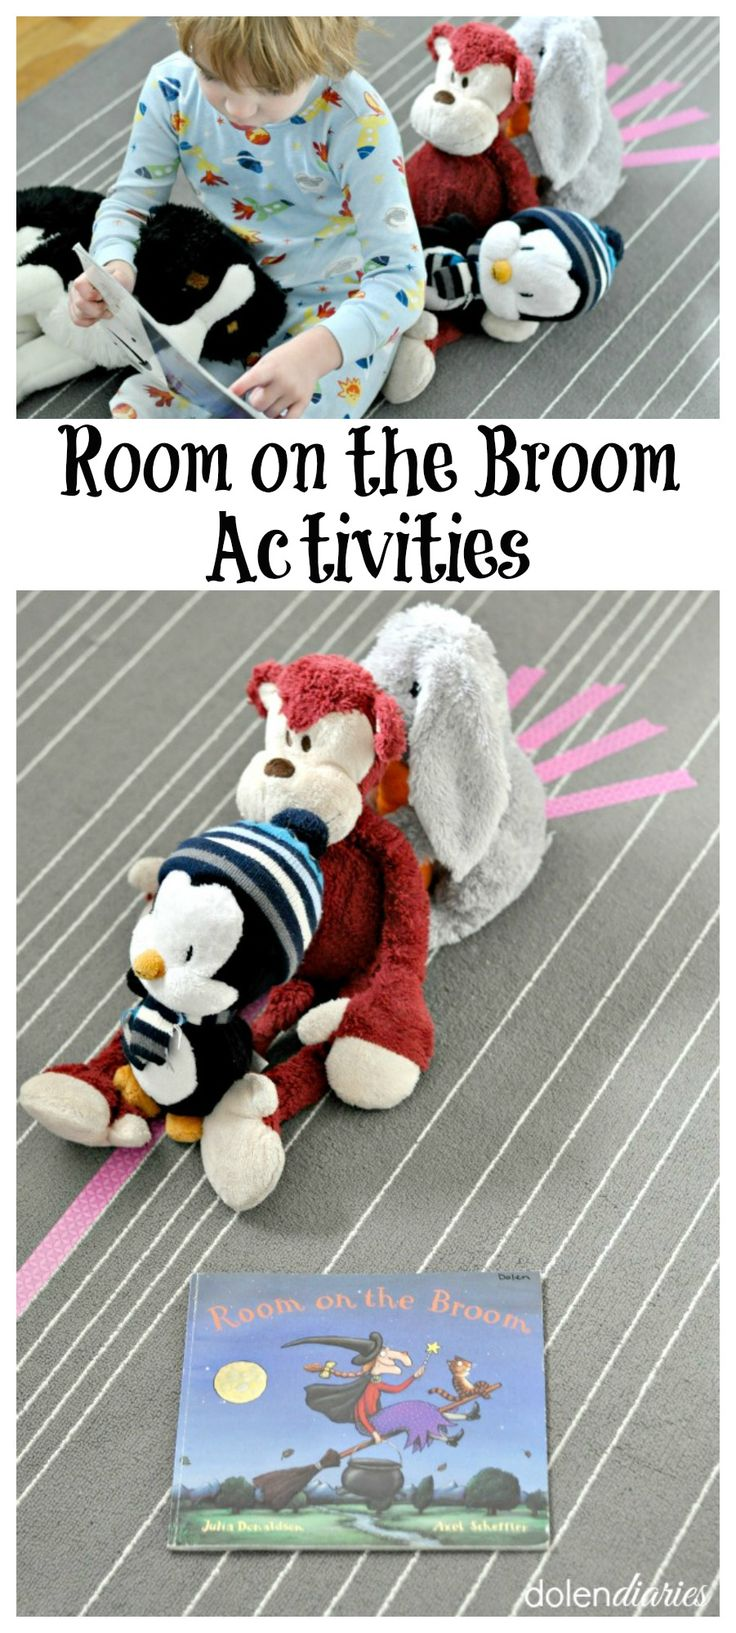 Room on the Broom Activities Cute ideas to extend reading fun! Can be done at home or in a preschool class!